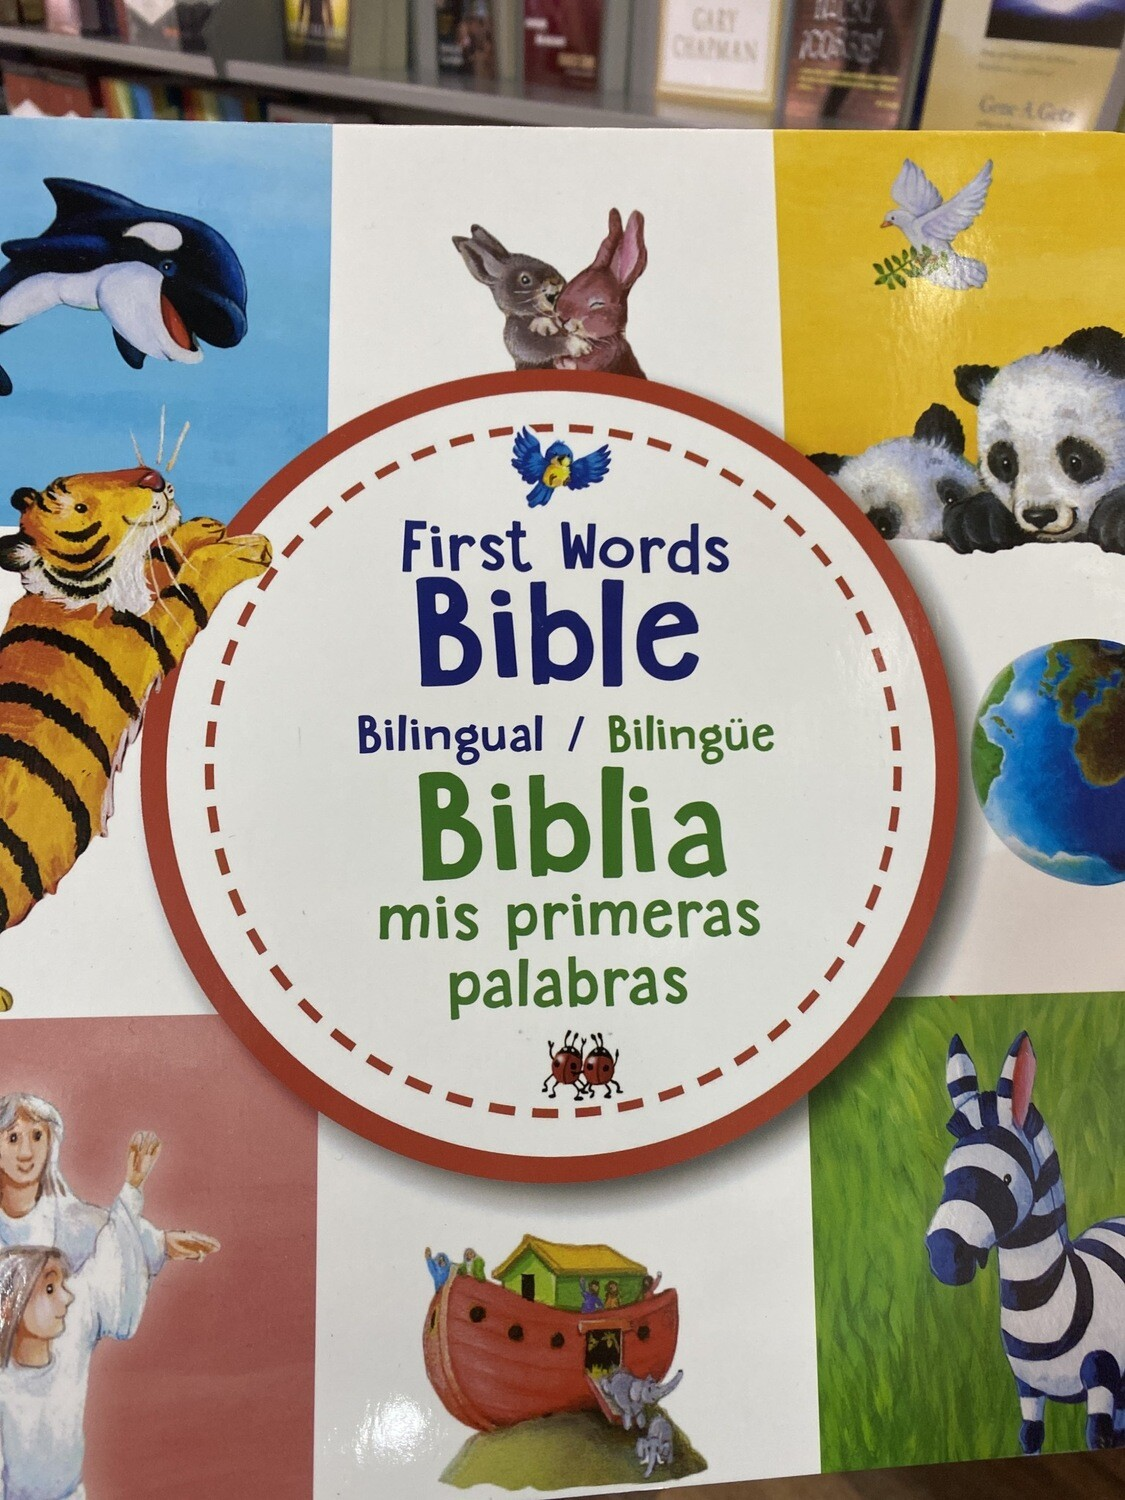 First Words Bible, Bilingual